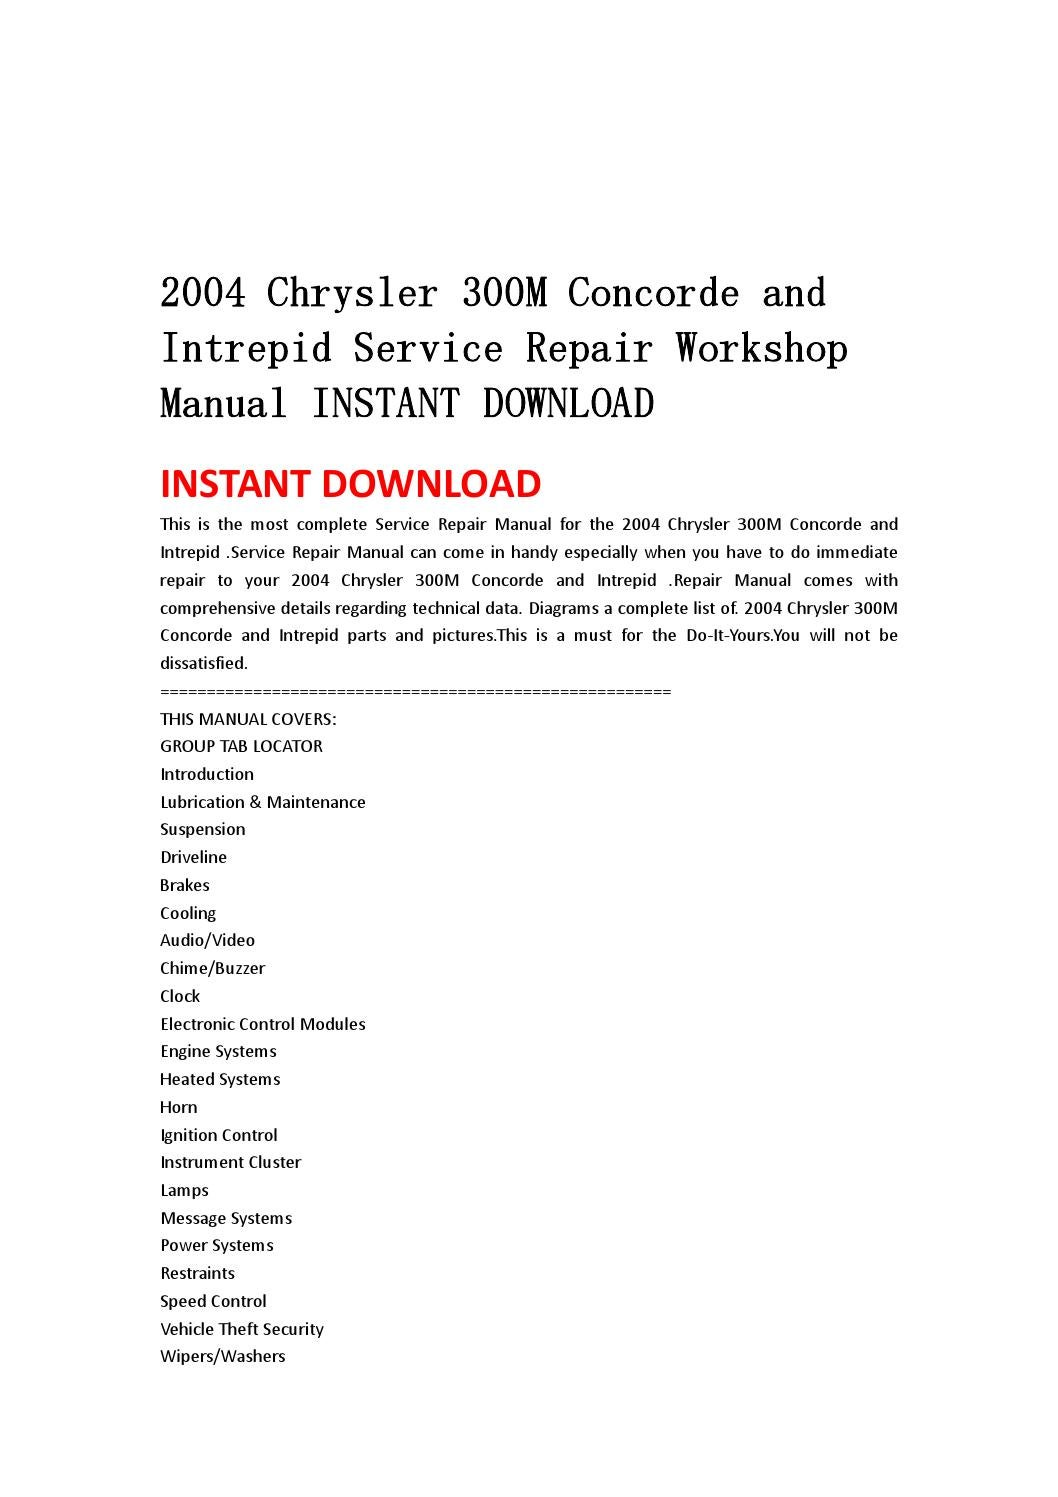 2004 chrysler 300m concorde and intrepid service repair workshop manual  instant download by hhsgefbseh - issuu